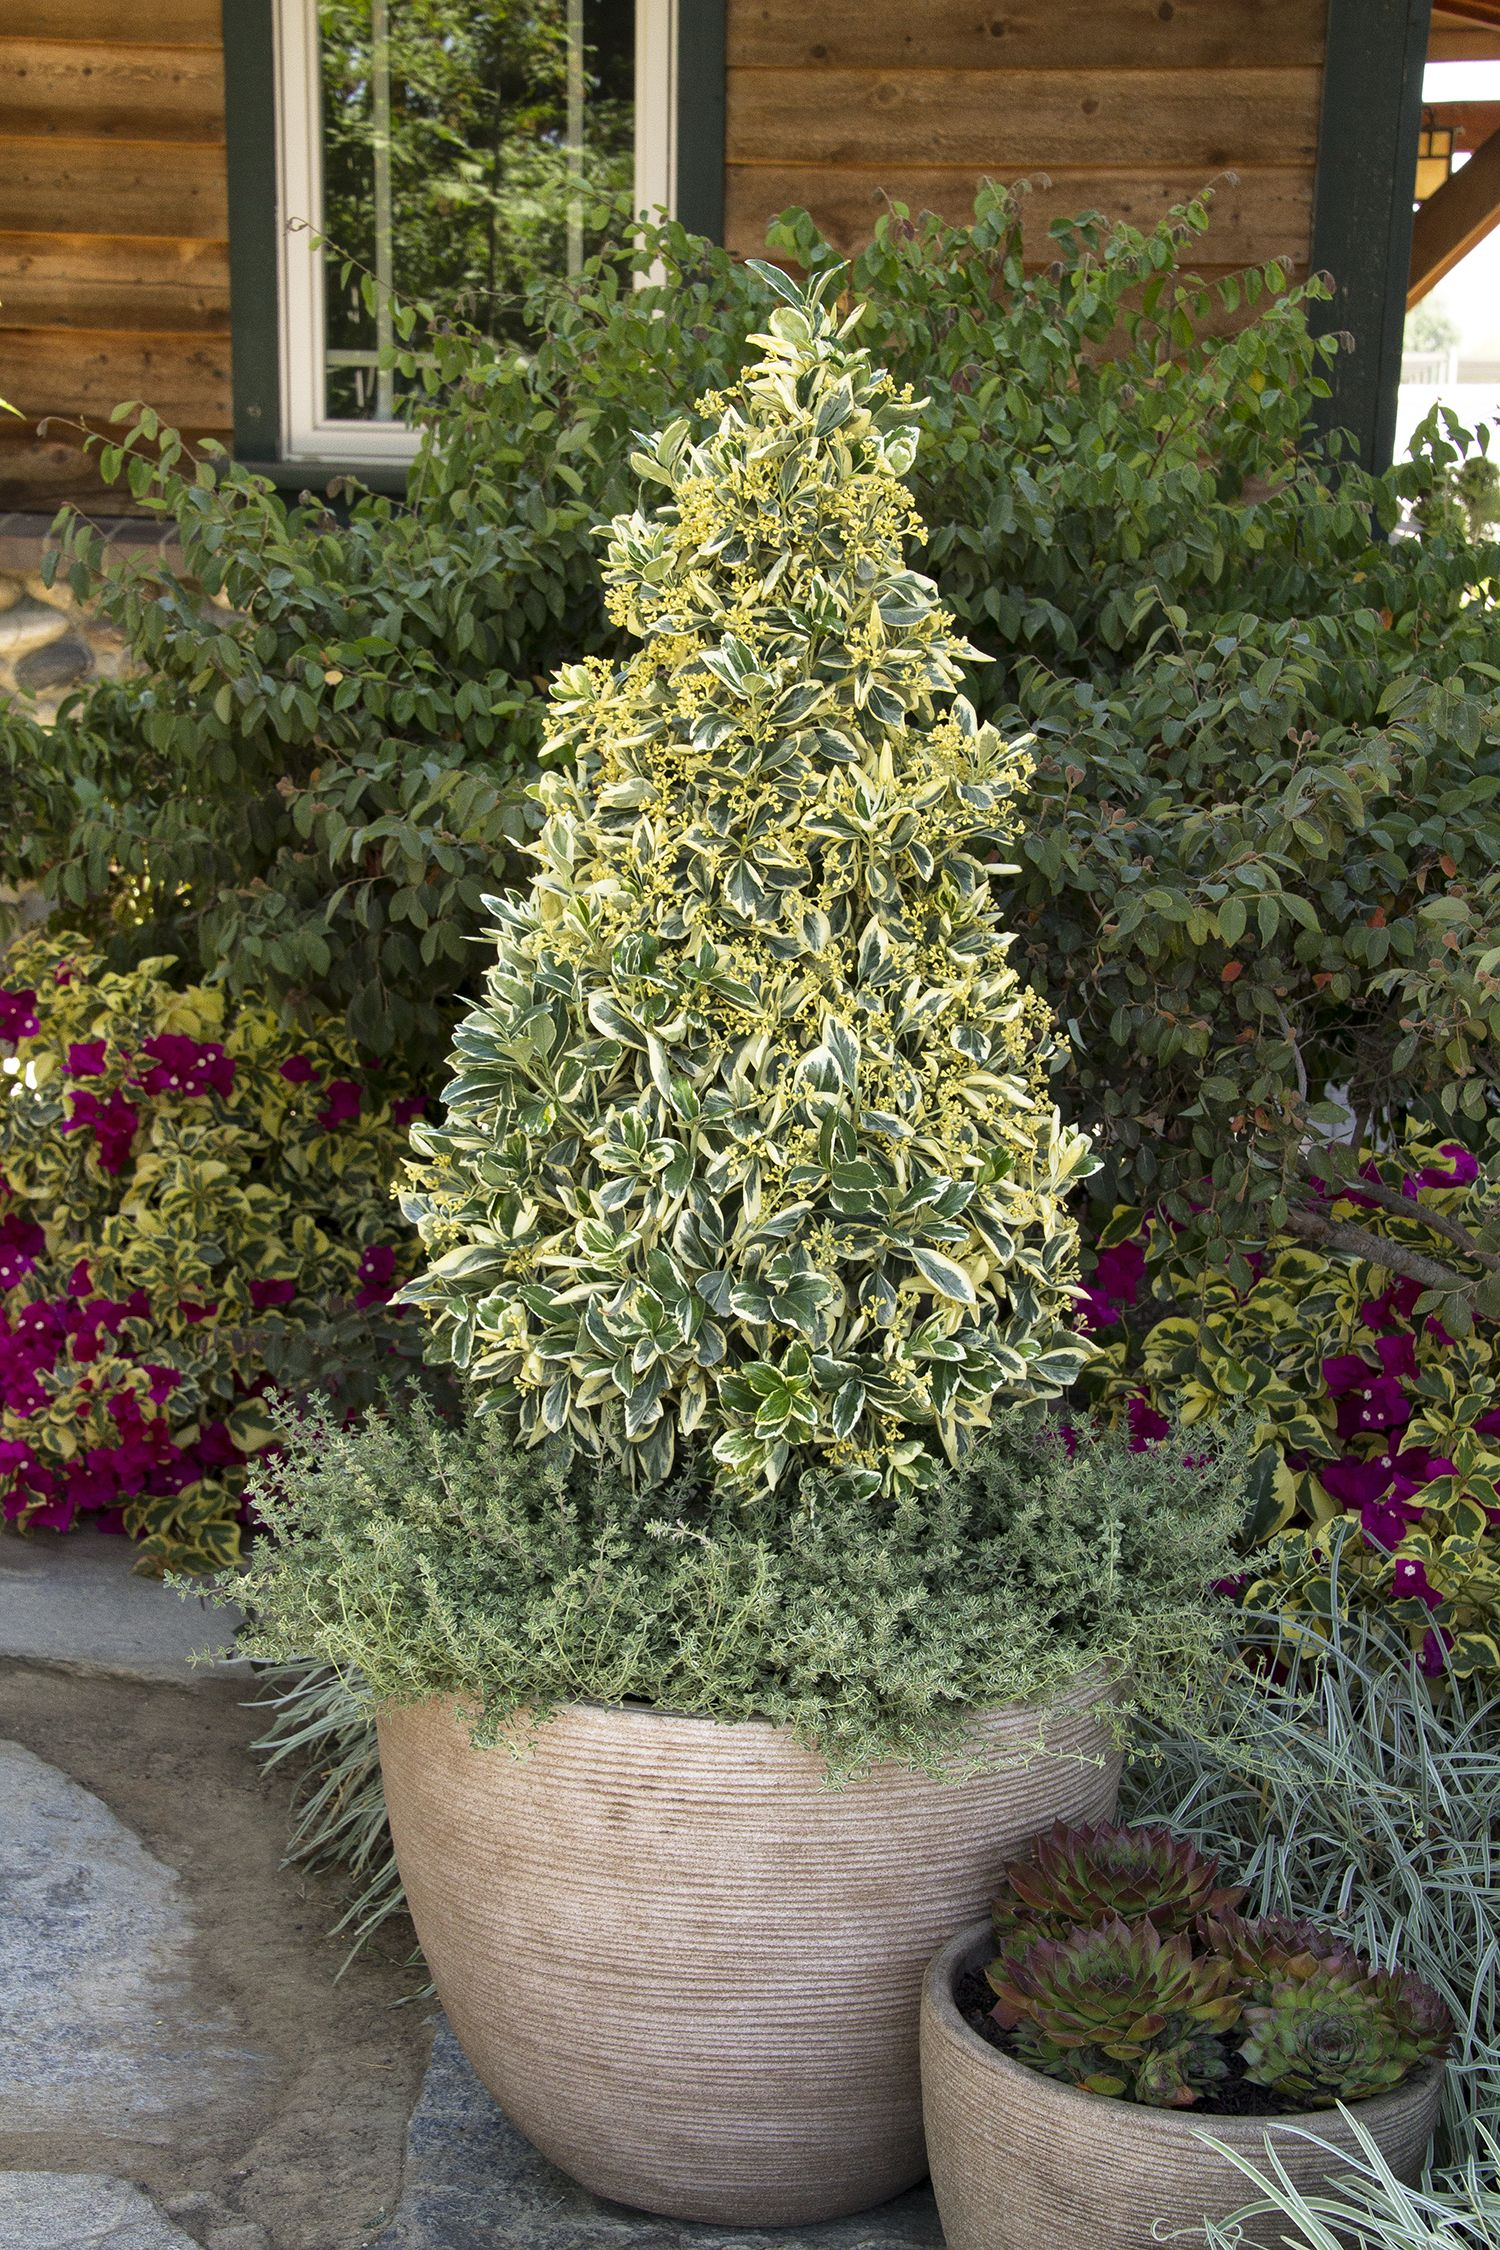 Silver King Euonymus is an excellent hedge plant with attractive